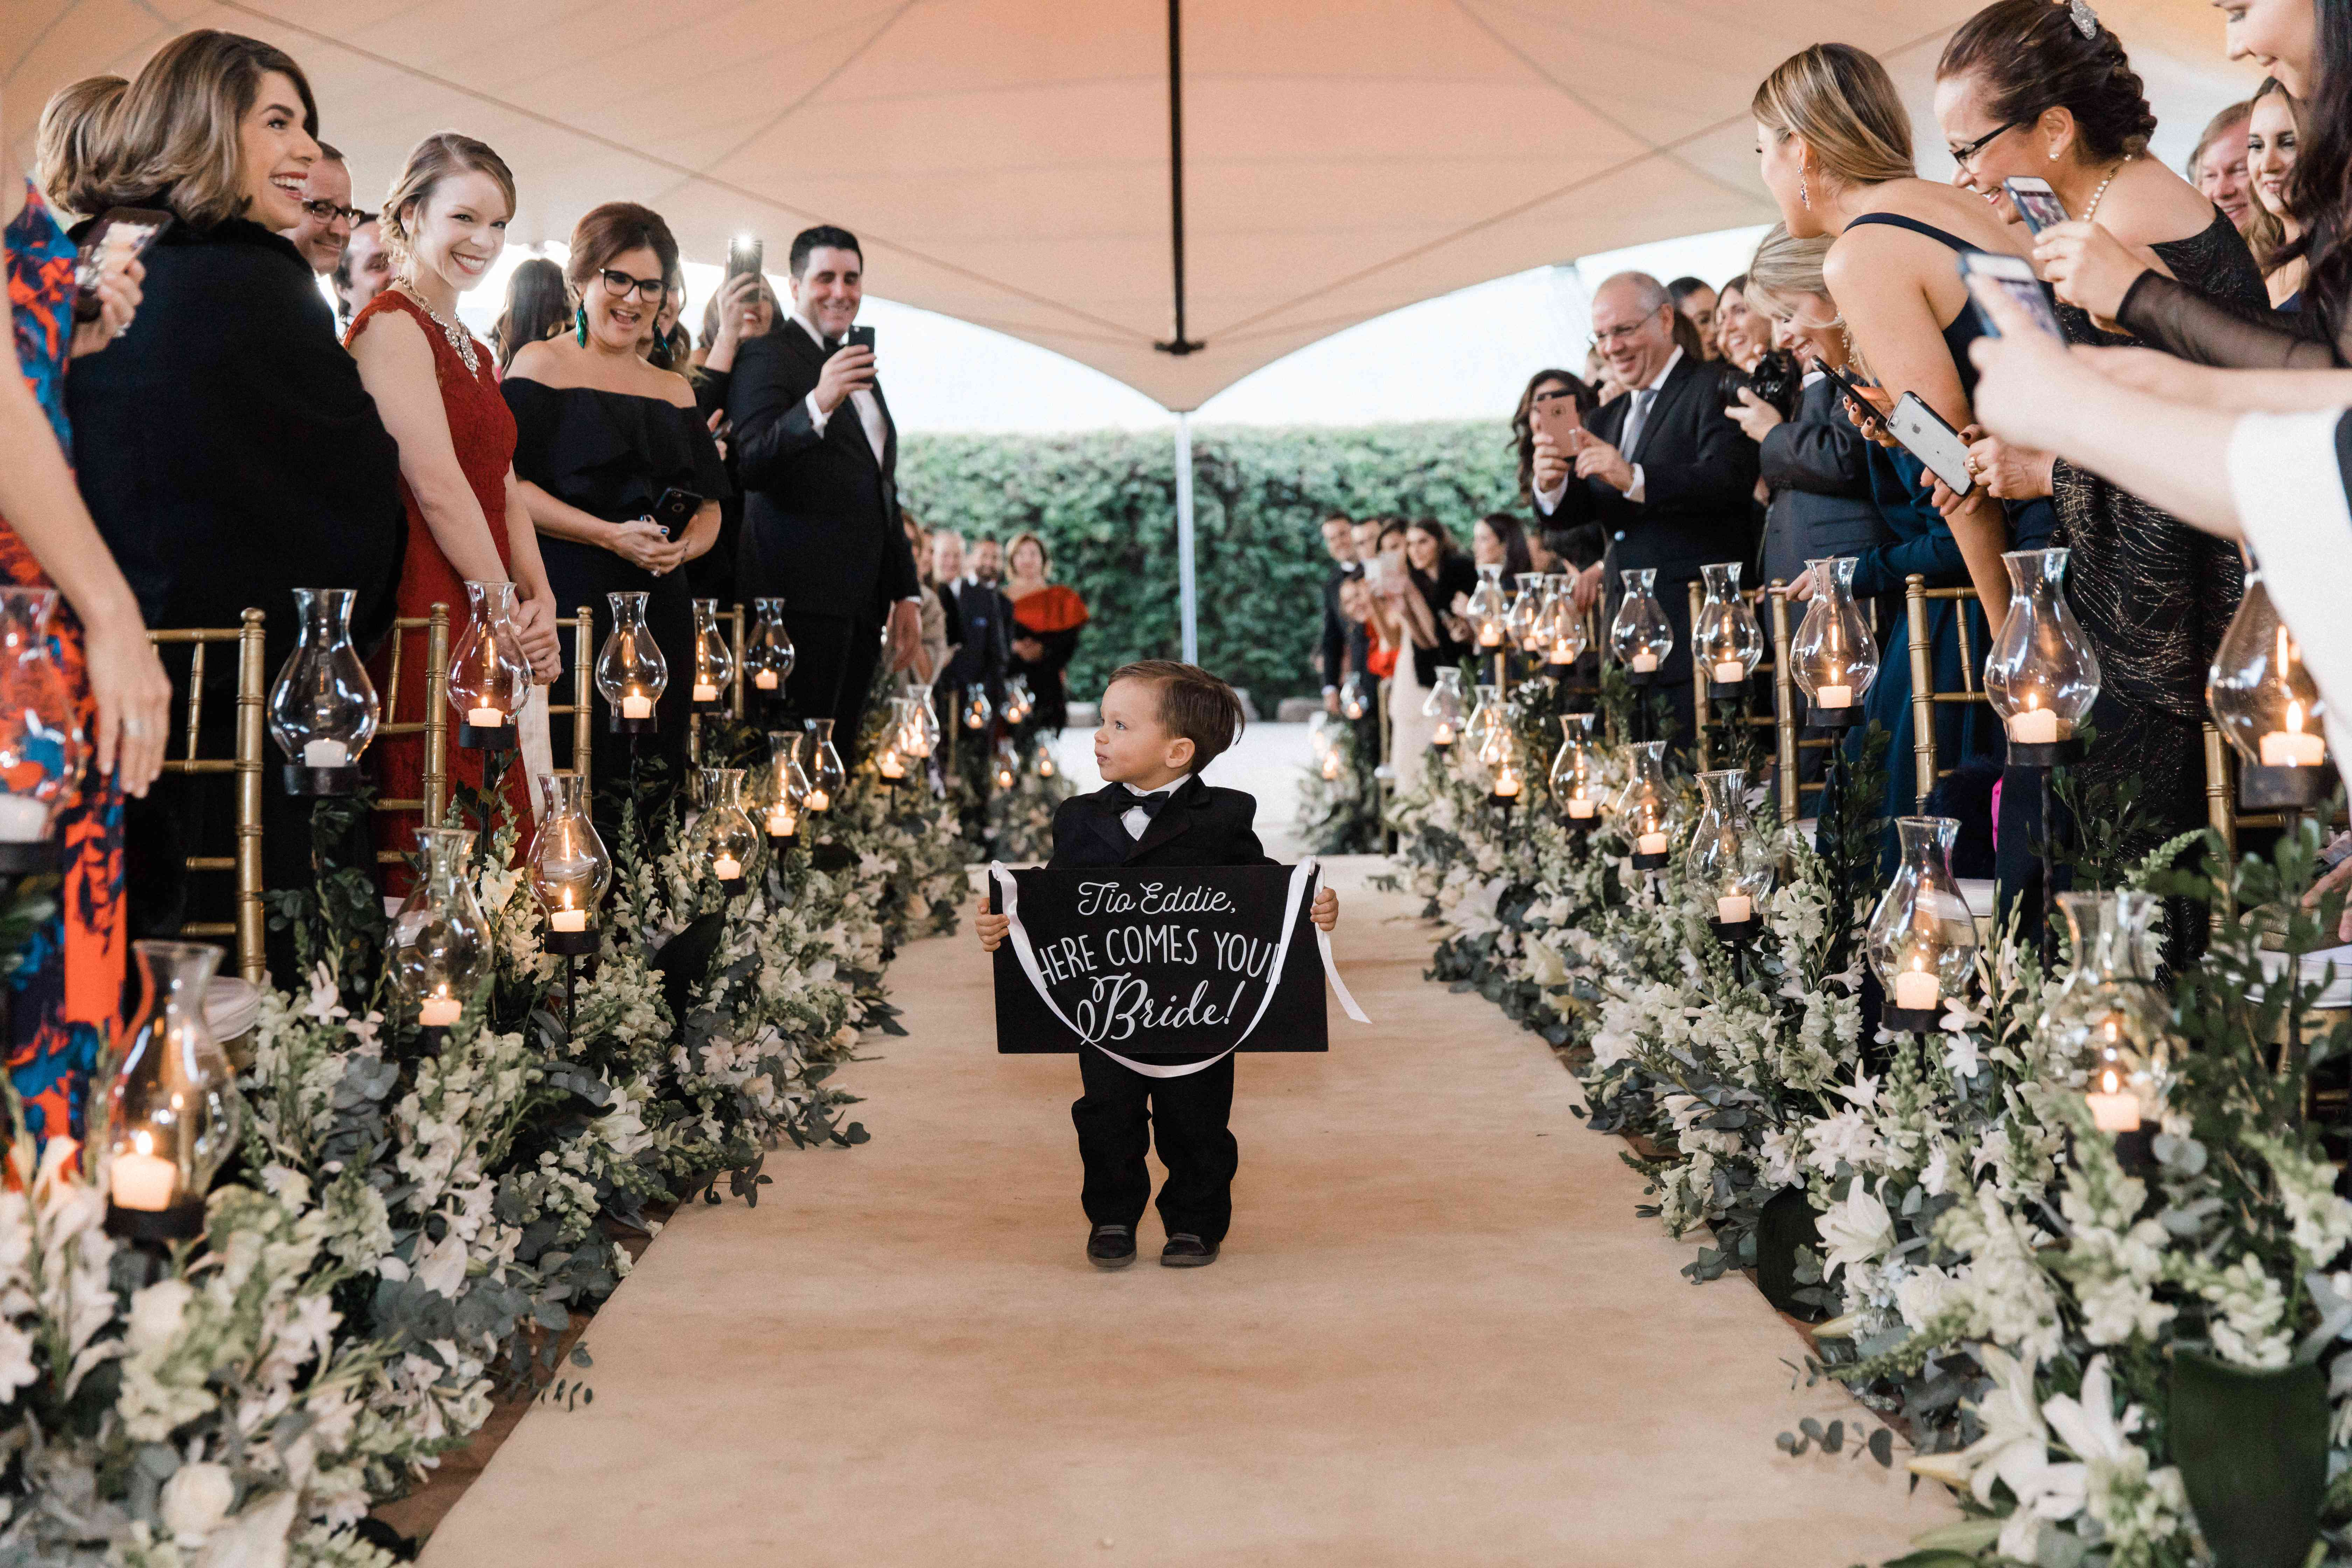 <p>ring bearer with sign walking down candle lined aisle</p><br><br>